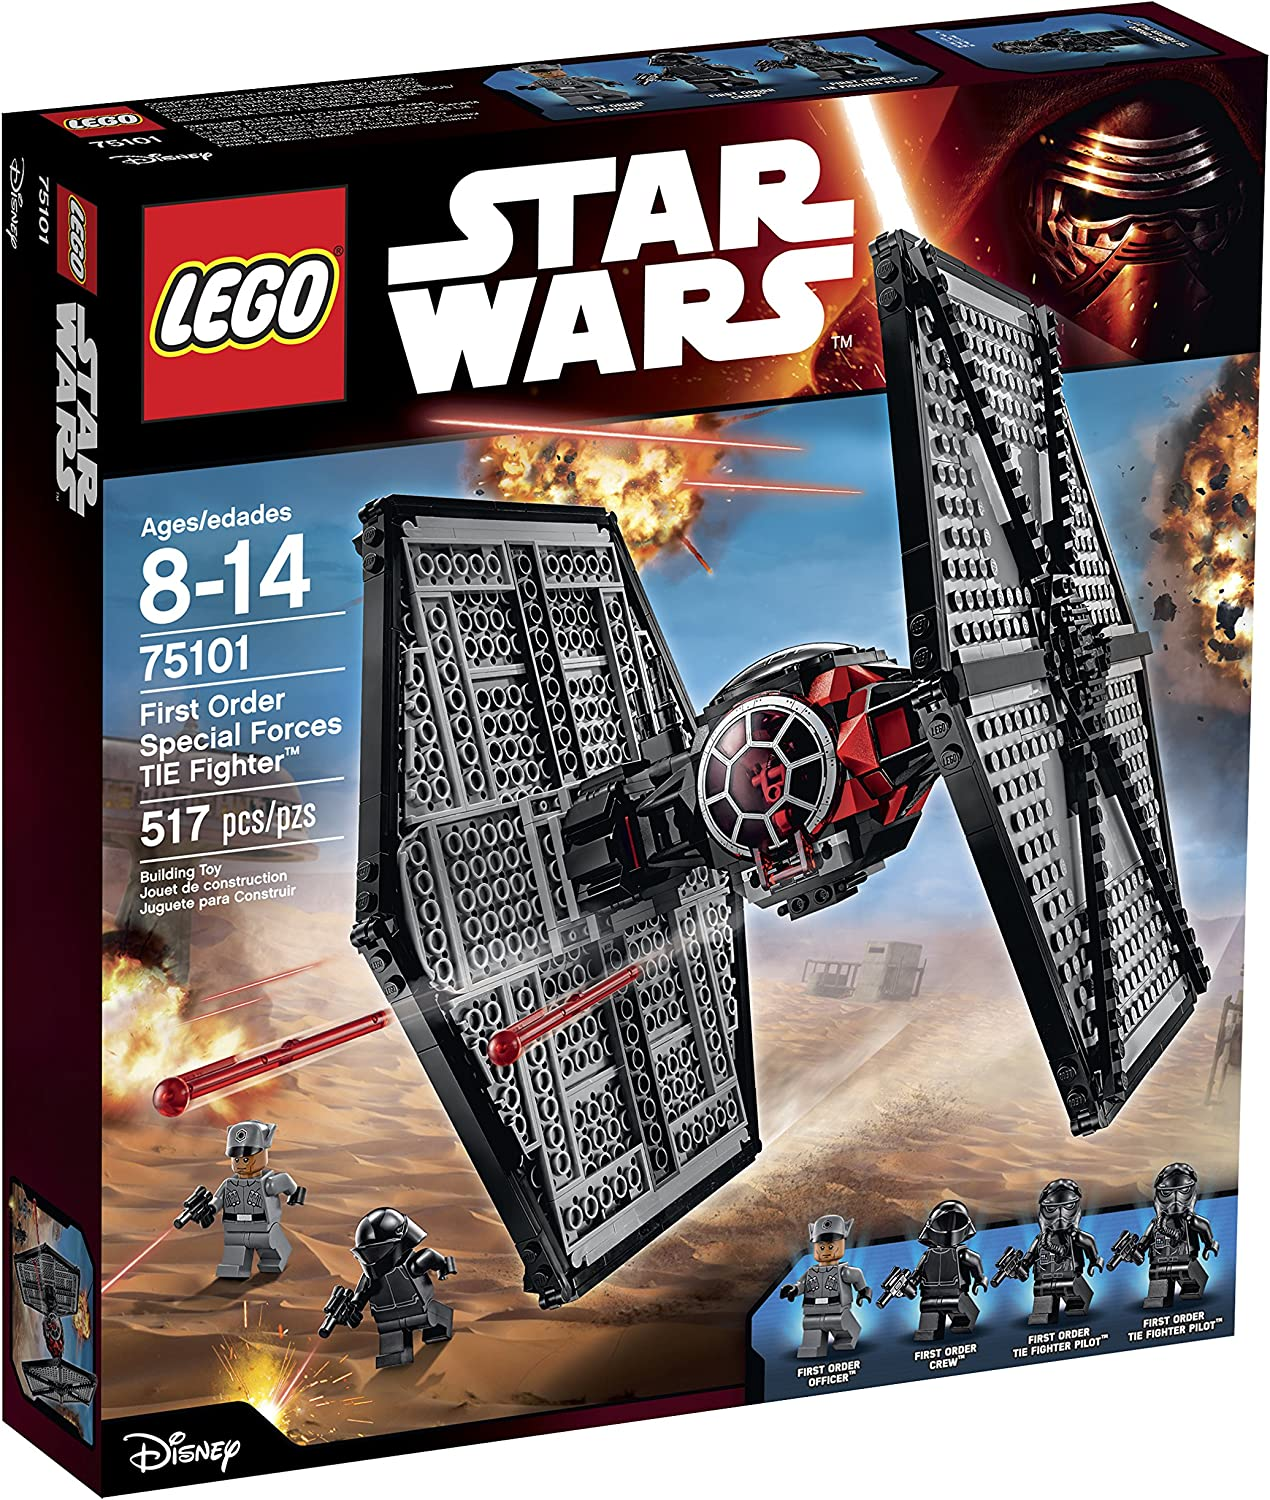 sw0621 Lego Tie Fighter Pilot Minifigure From Star Wars Sets 75106 75128 75082